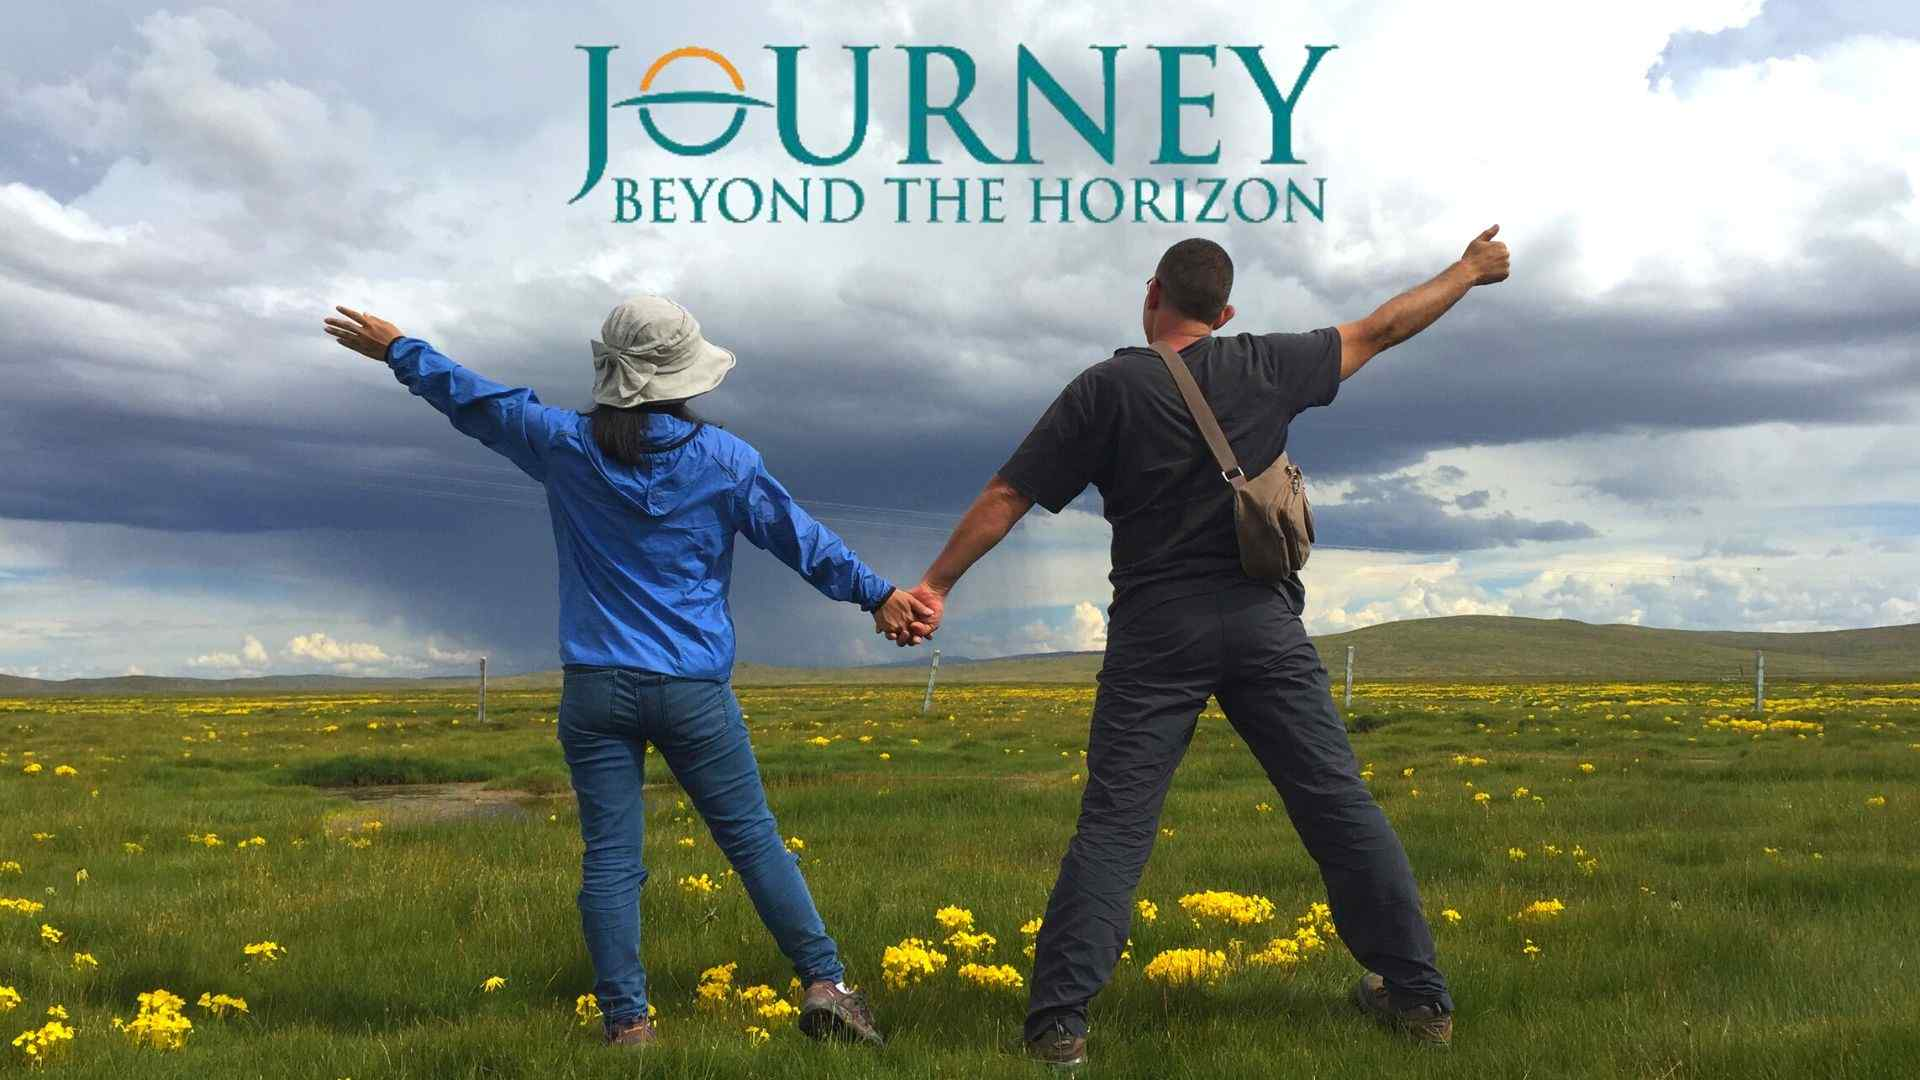 About Journey Beyond the Horizon travel blog